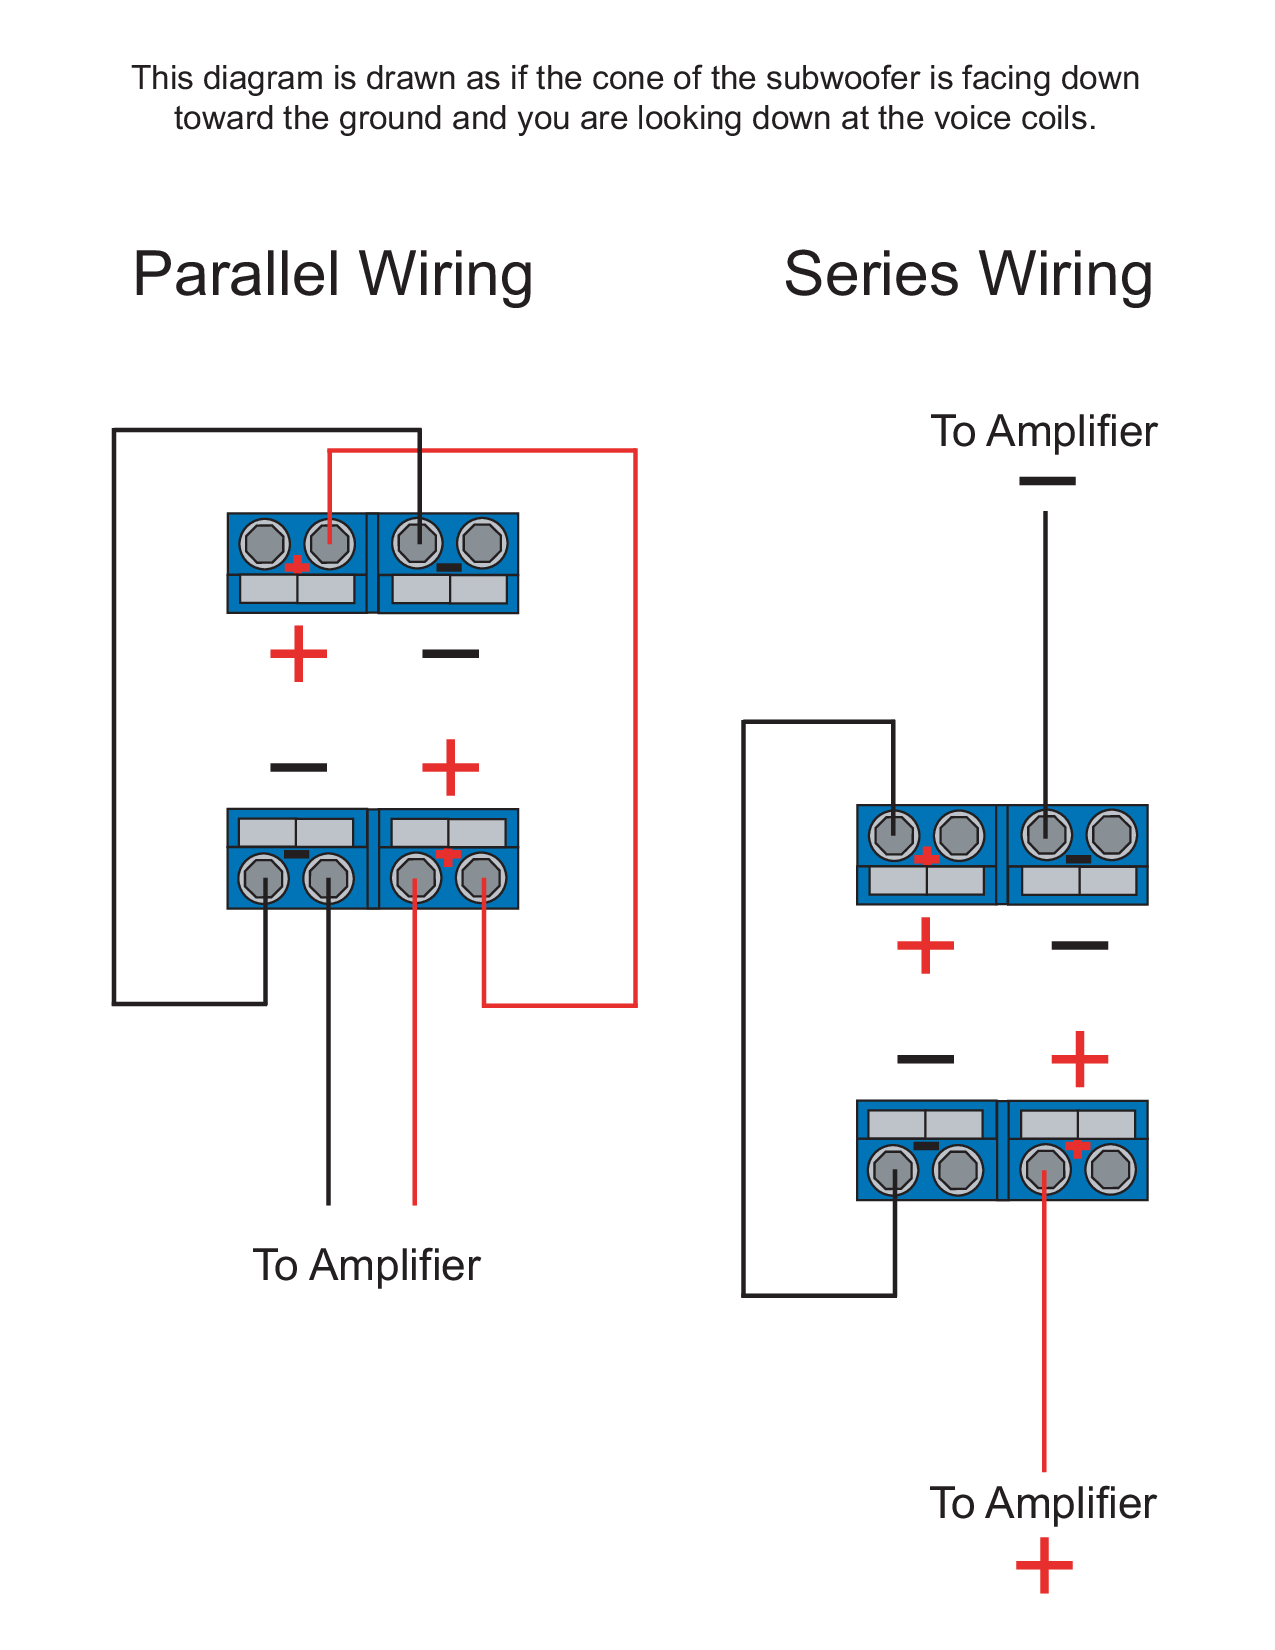 Subwoofer Wiring Diagrams from manualmachine.com